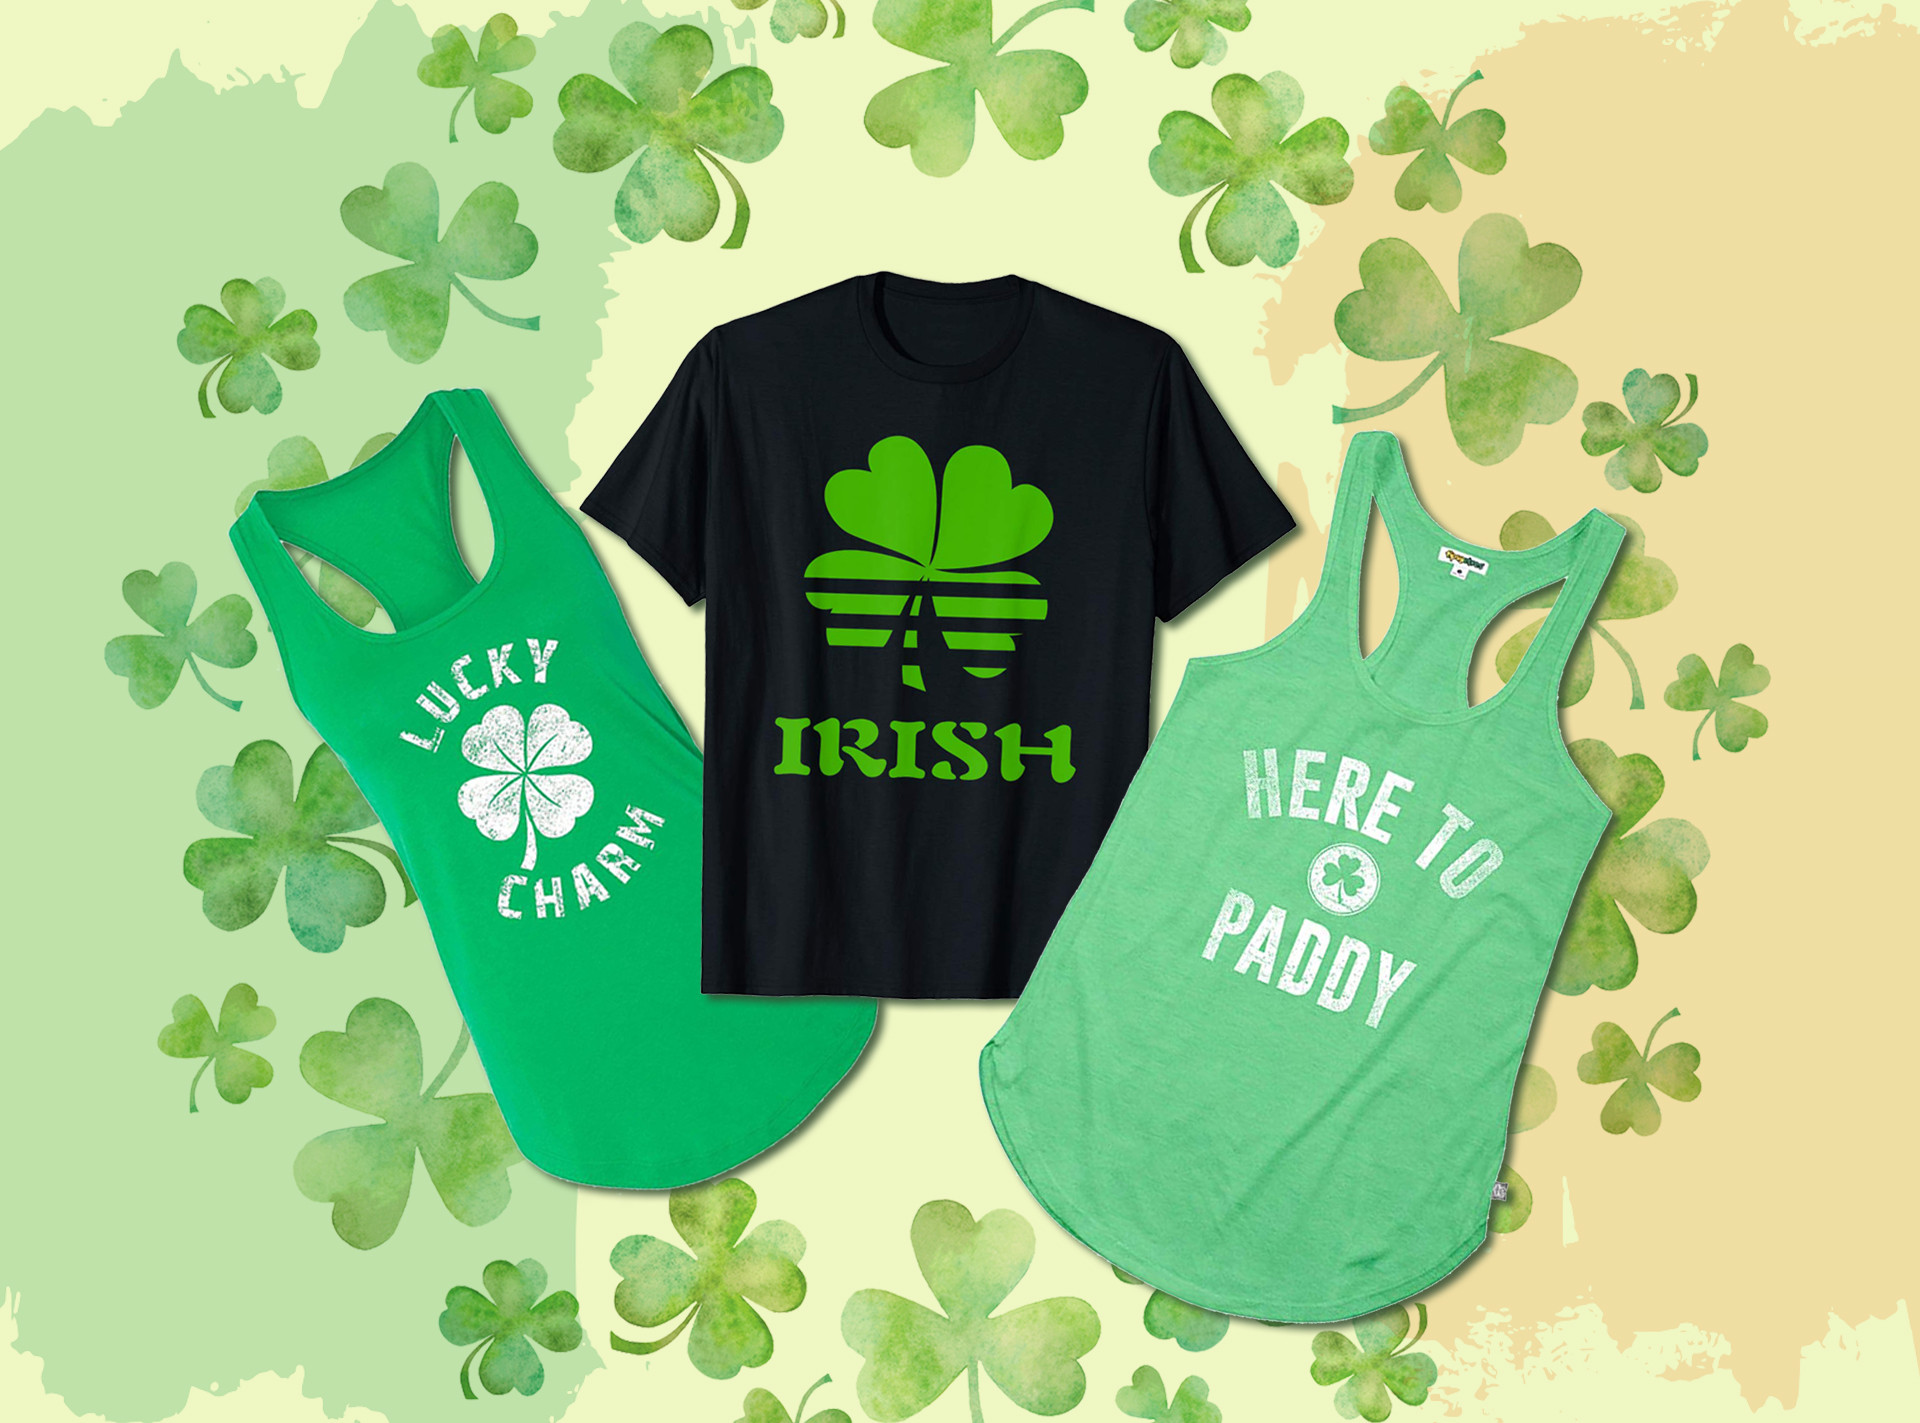 ffe065609 Shop St. Patrick's Day Graphic Tees Here | E! News